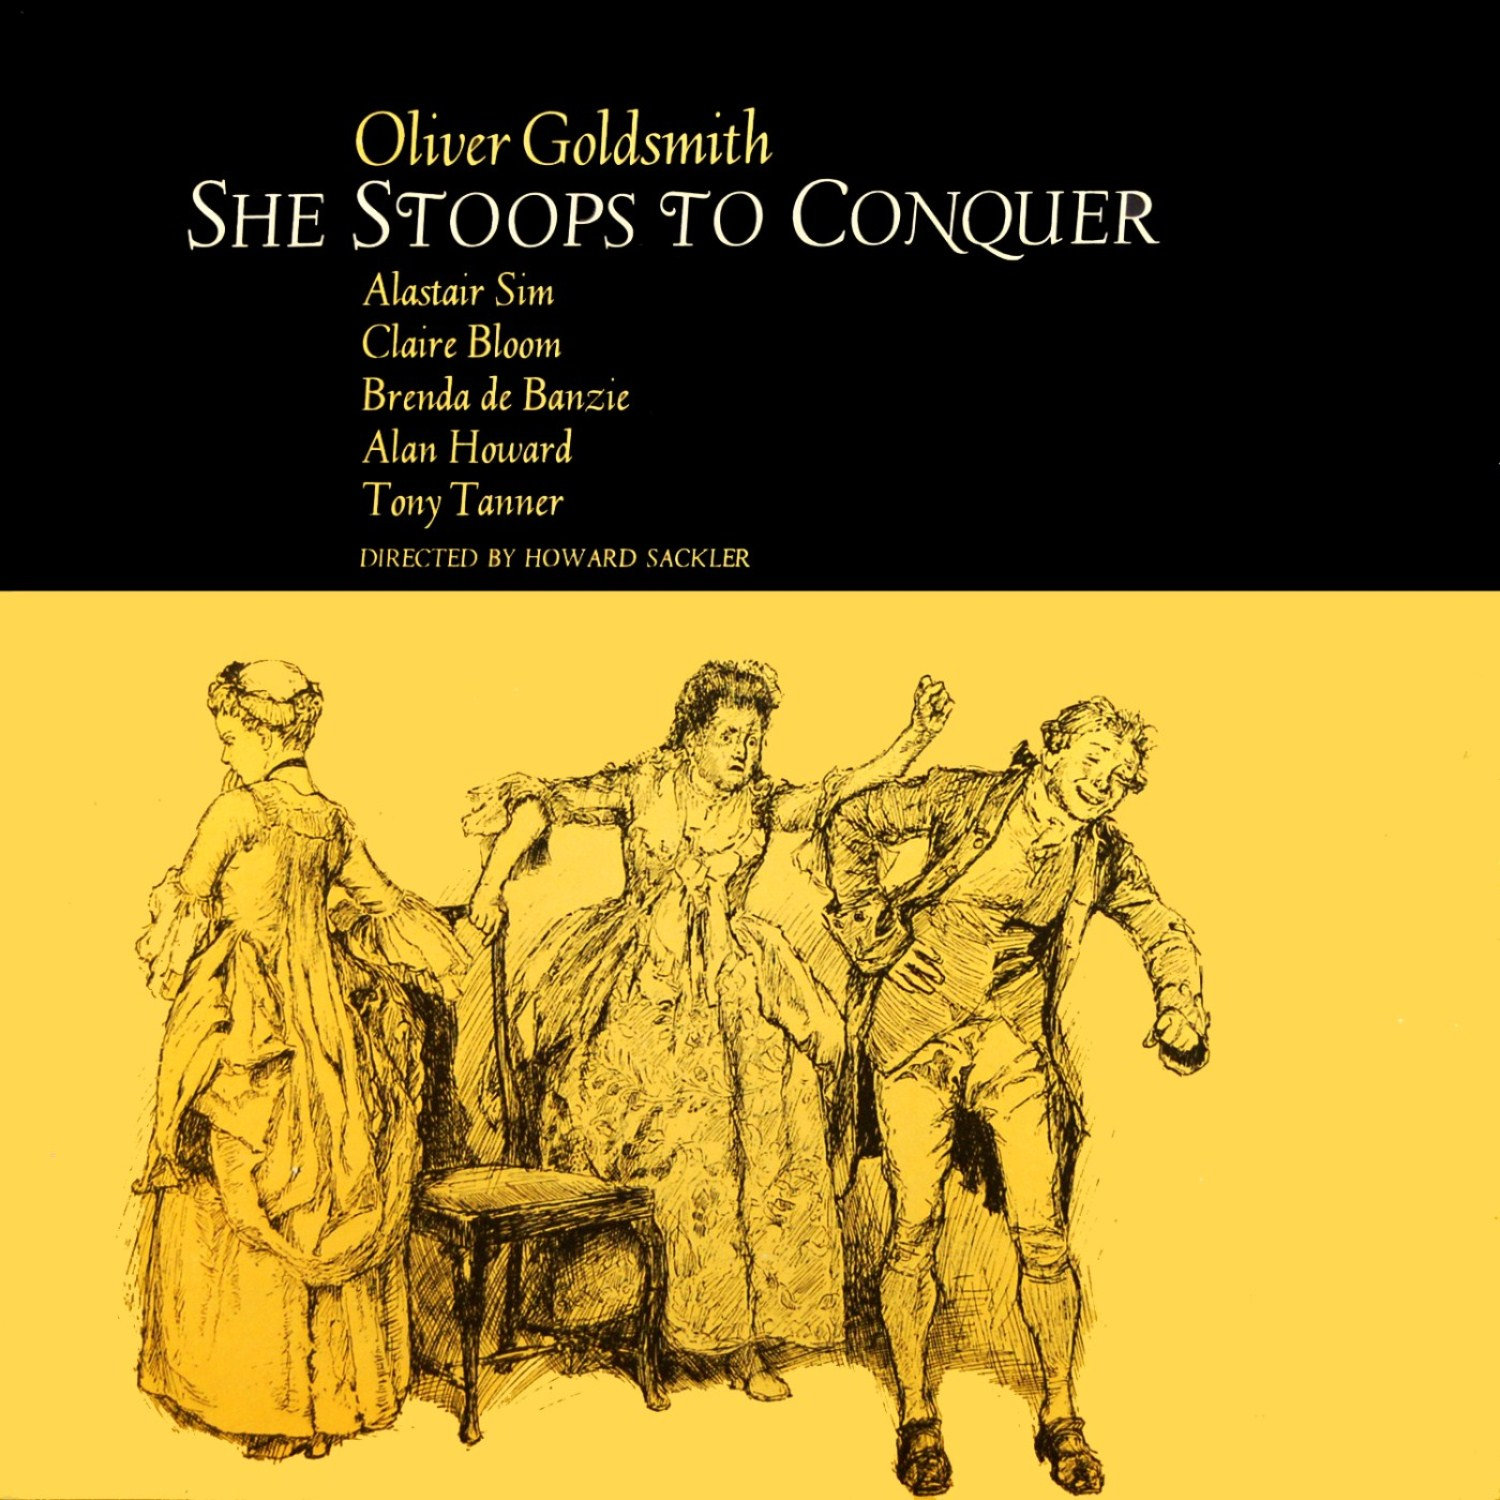 she stoops to conquer suggested essays  she stoops to conquer, or, initially called the mistakes of a night it was written in 1772 by the irish writer oliver goldsmith a hundred years after.